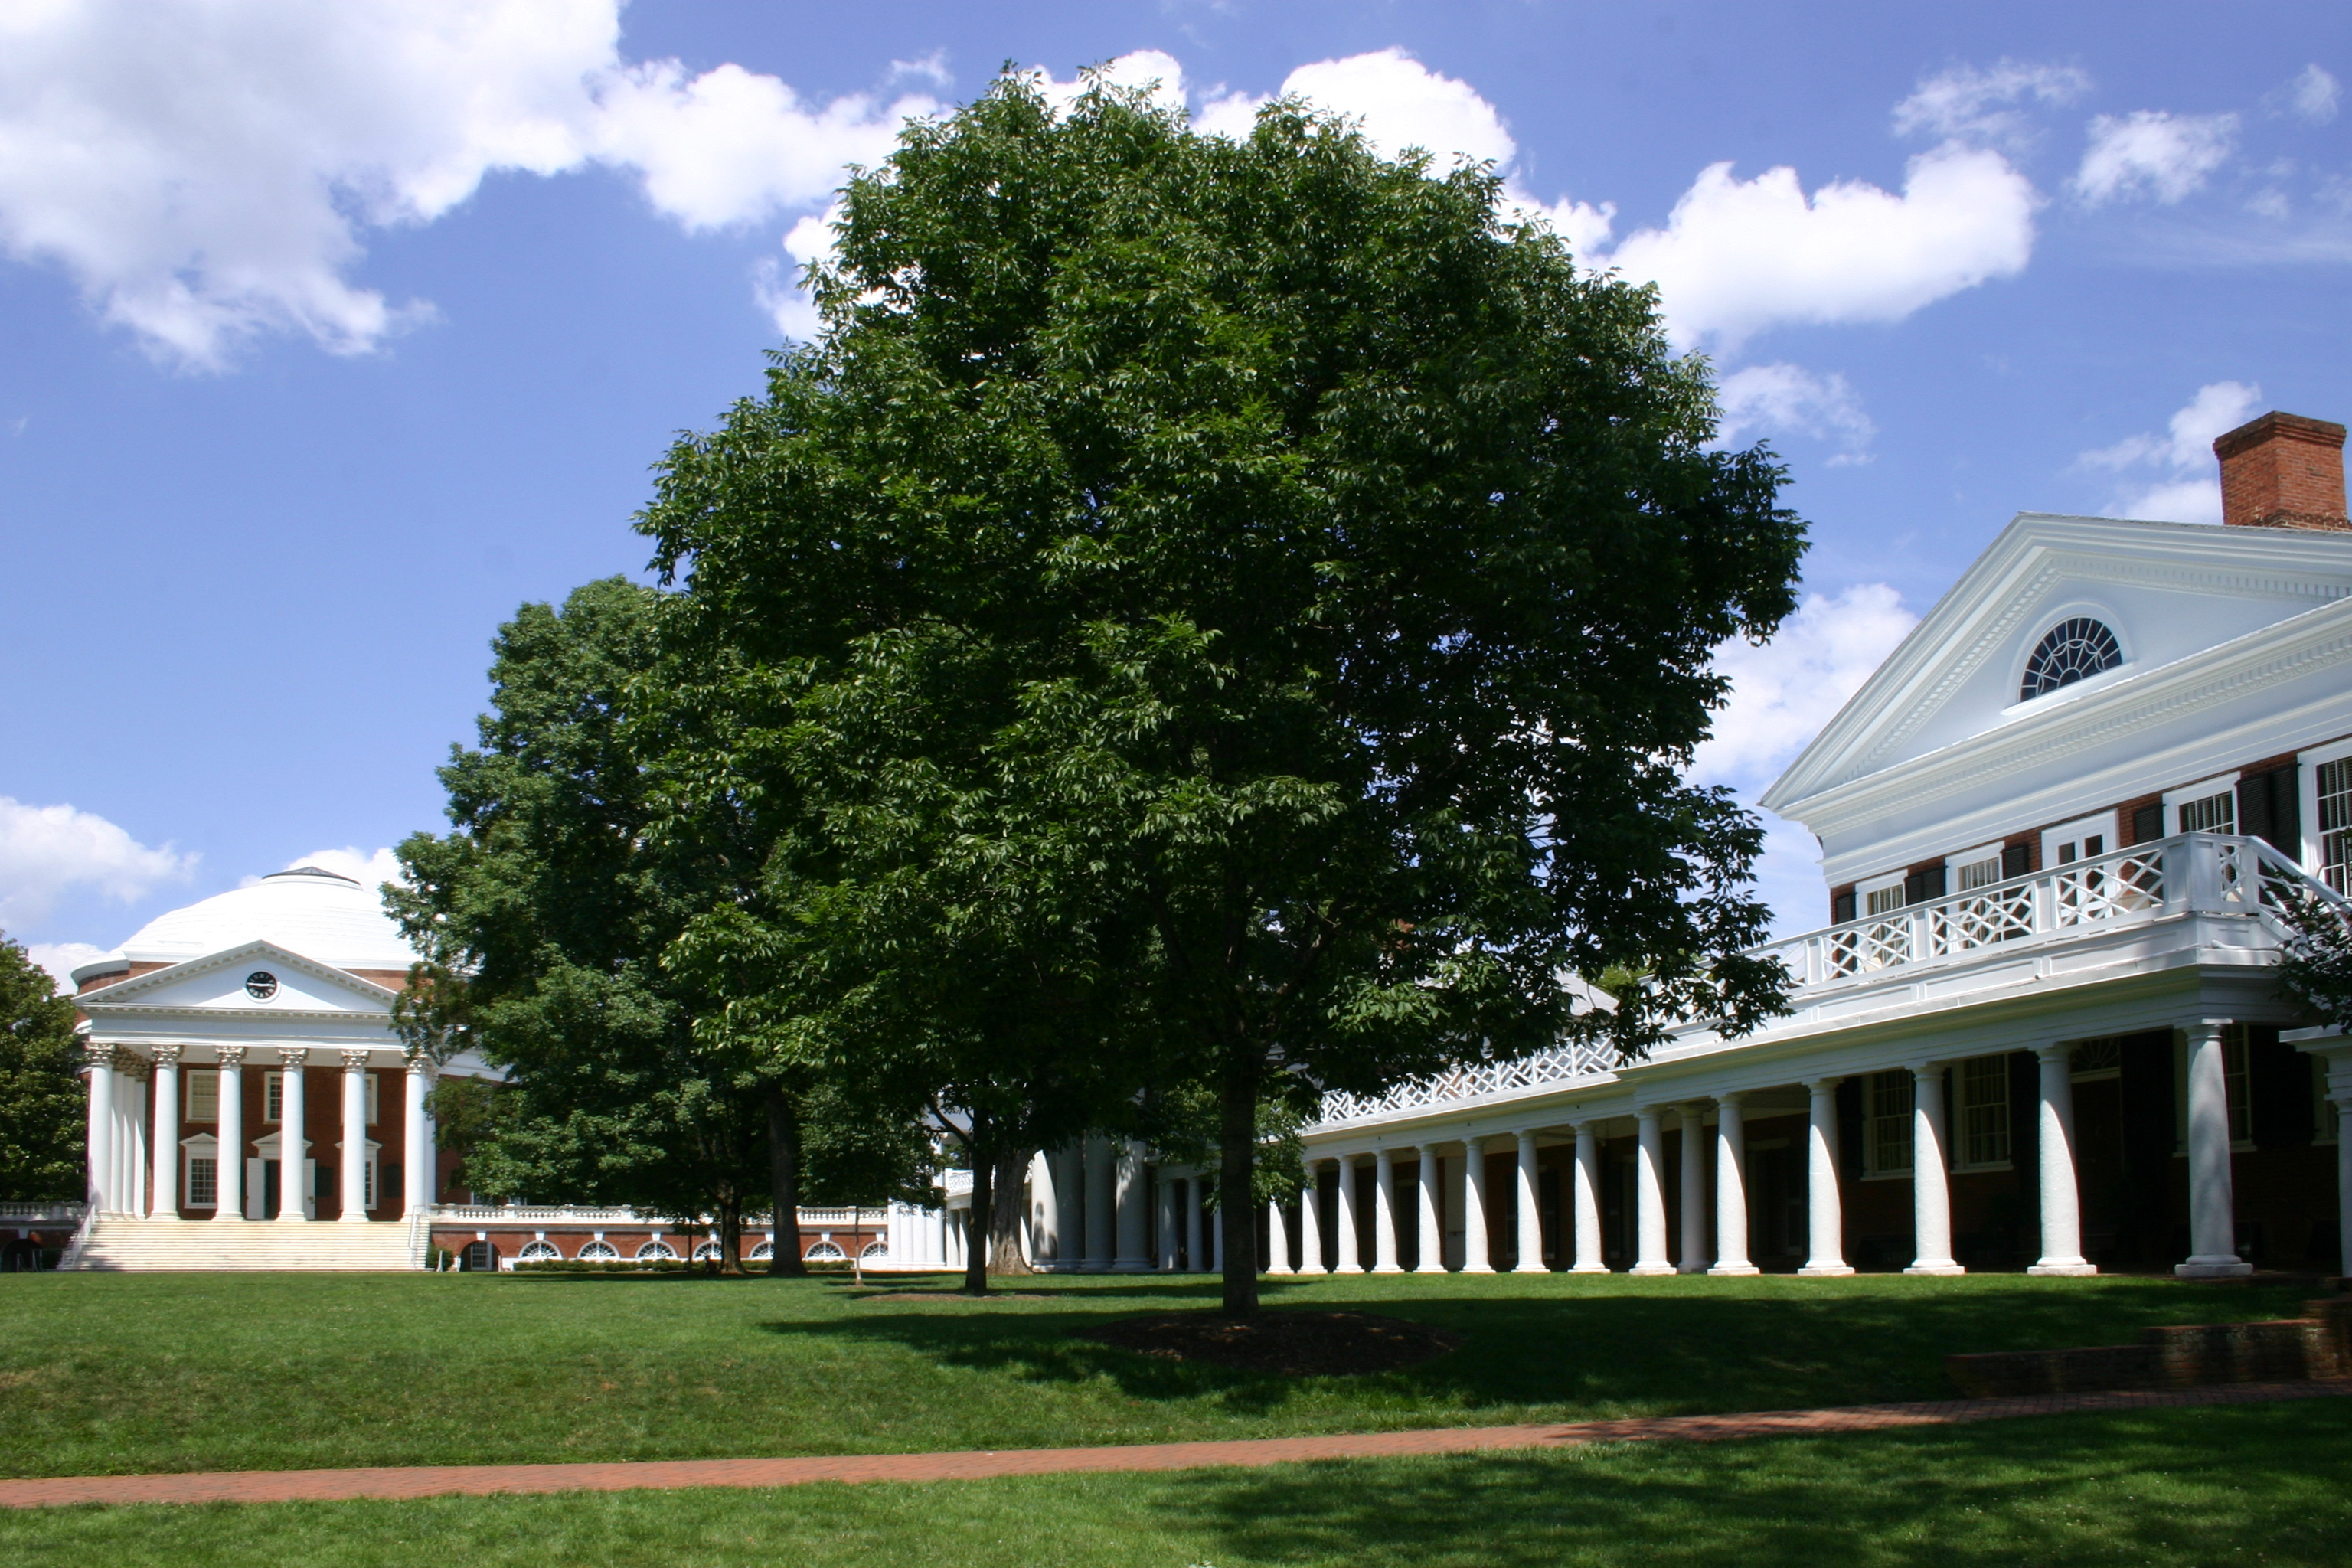 Tree in Courtyard of UVA